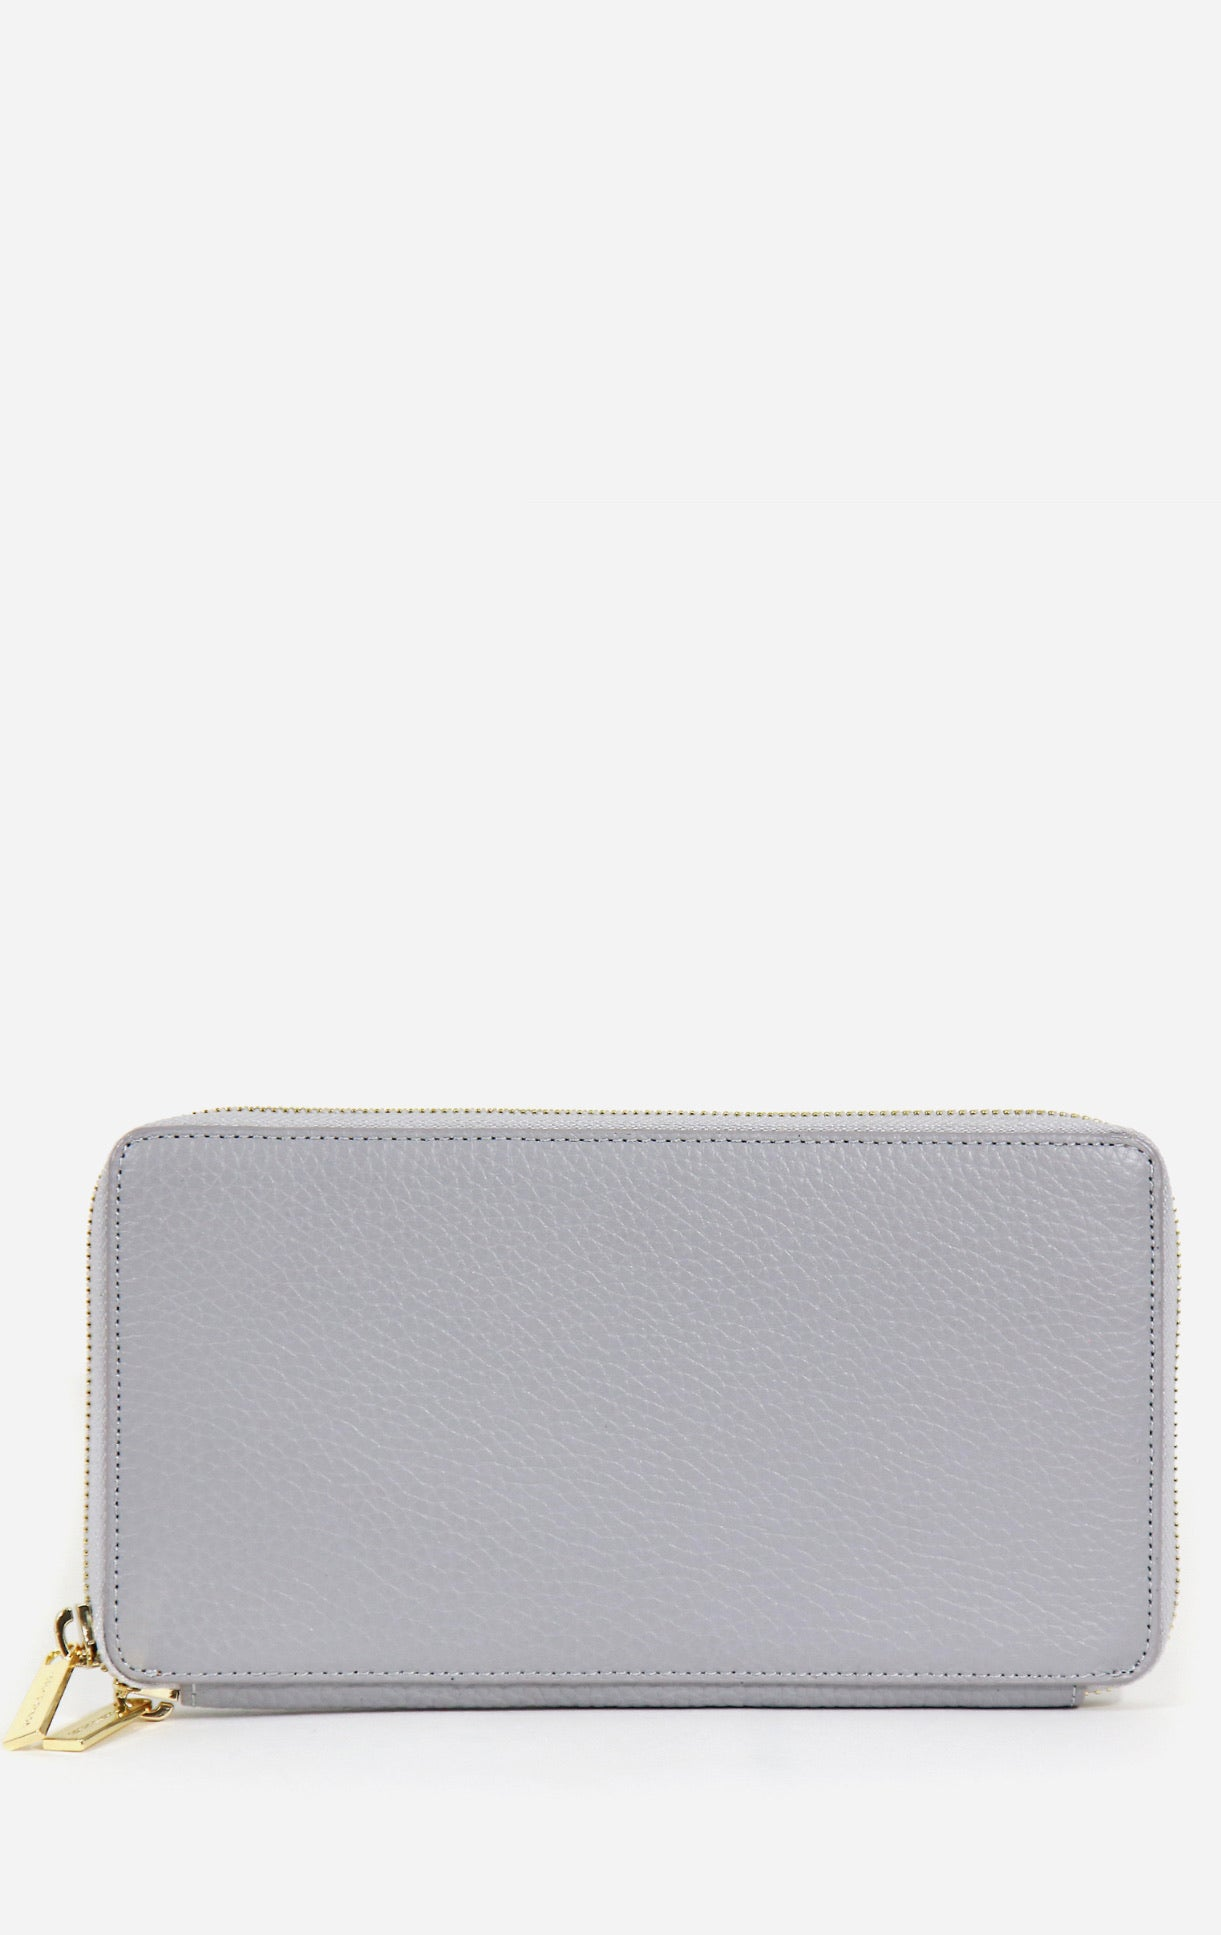 Neely & Chloe - No. 48 The Zip Wallet Pebble - Stone